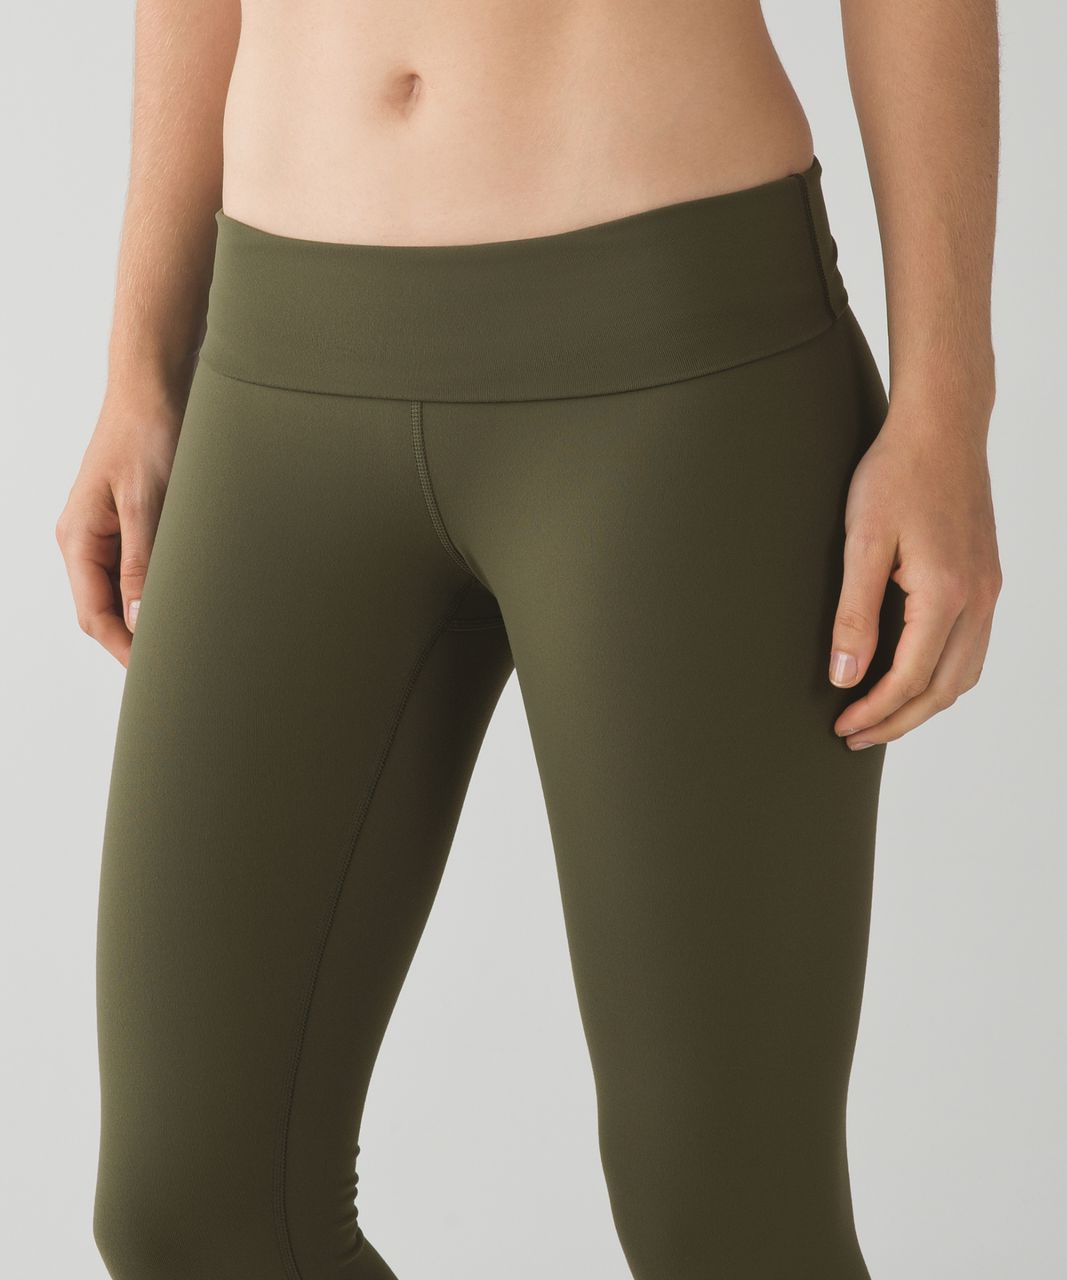 Lululemon Wunder Under Pant *Full-On Luon (Roll Down) - Fatigue Green